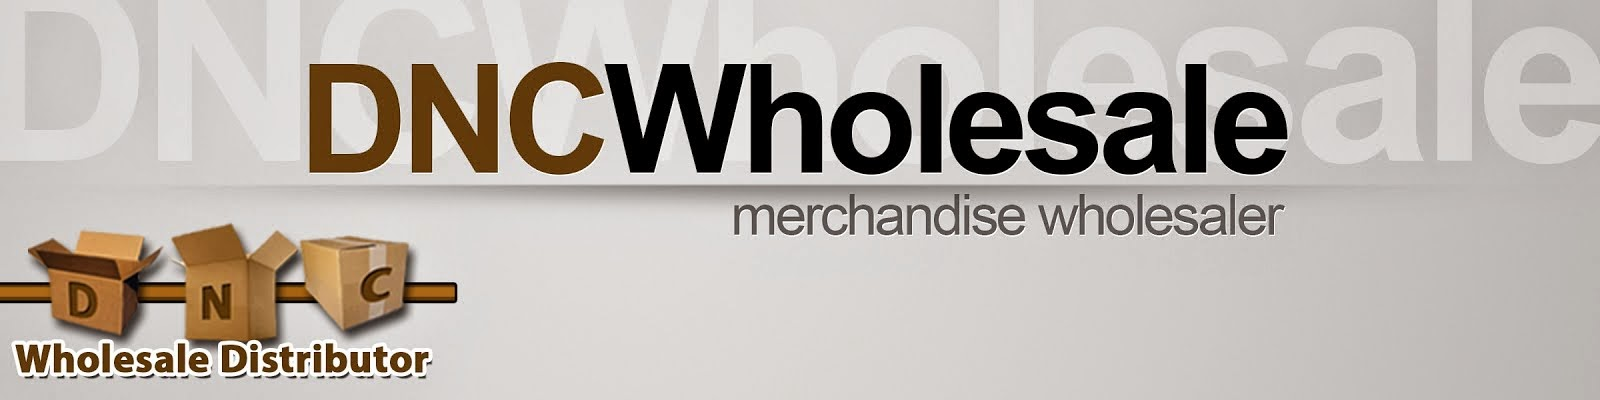 working with overstock and closeout designer clothing and